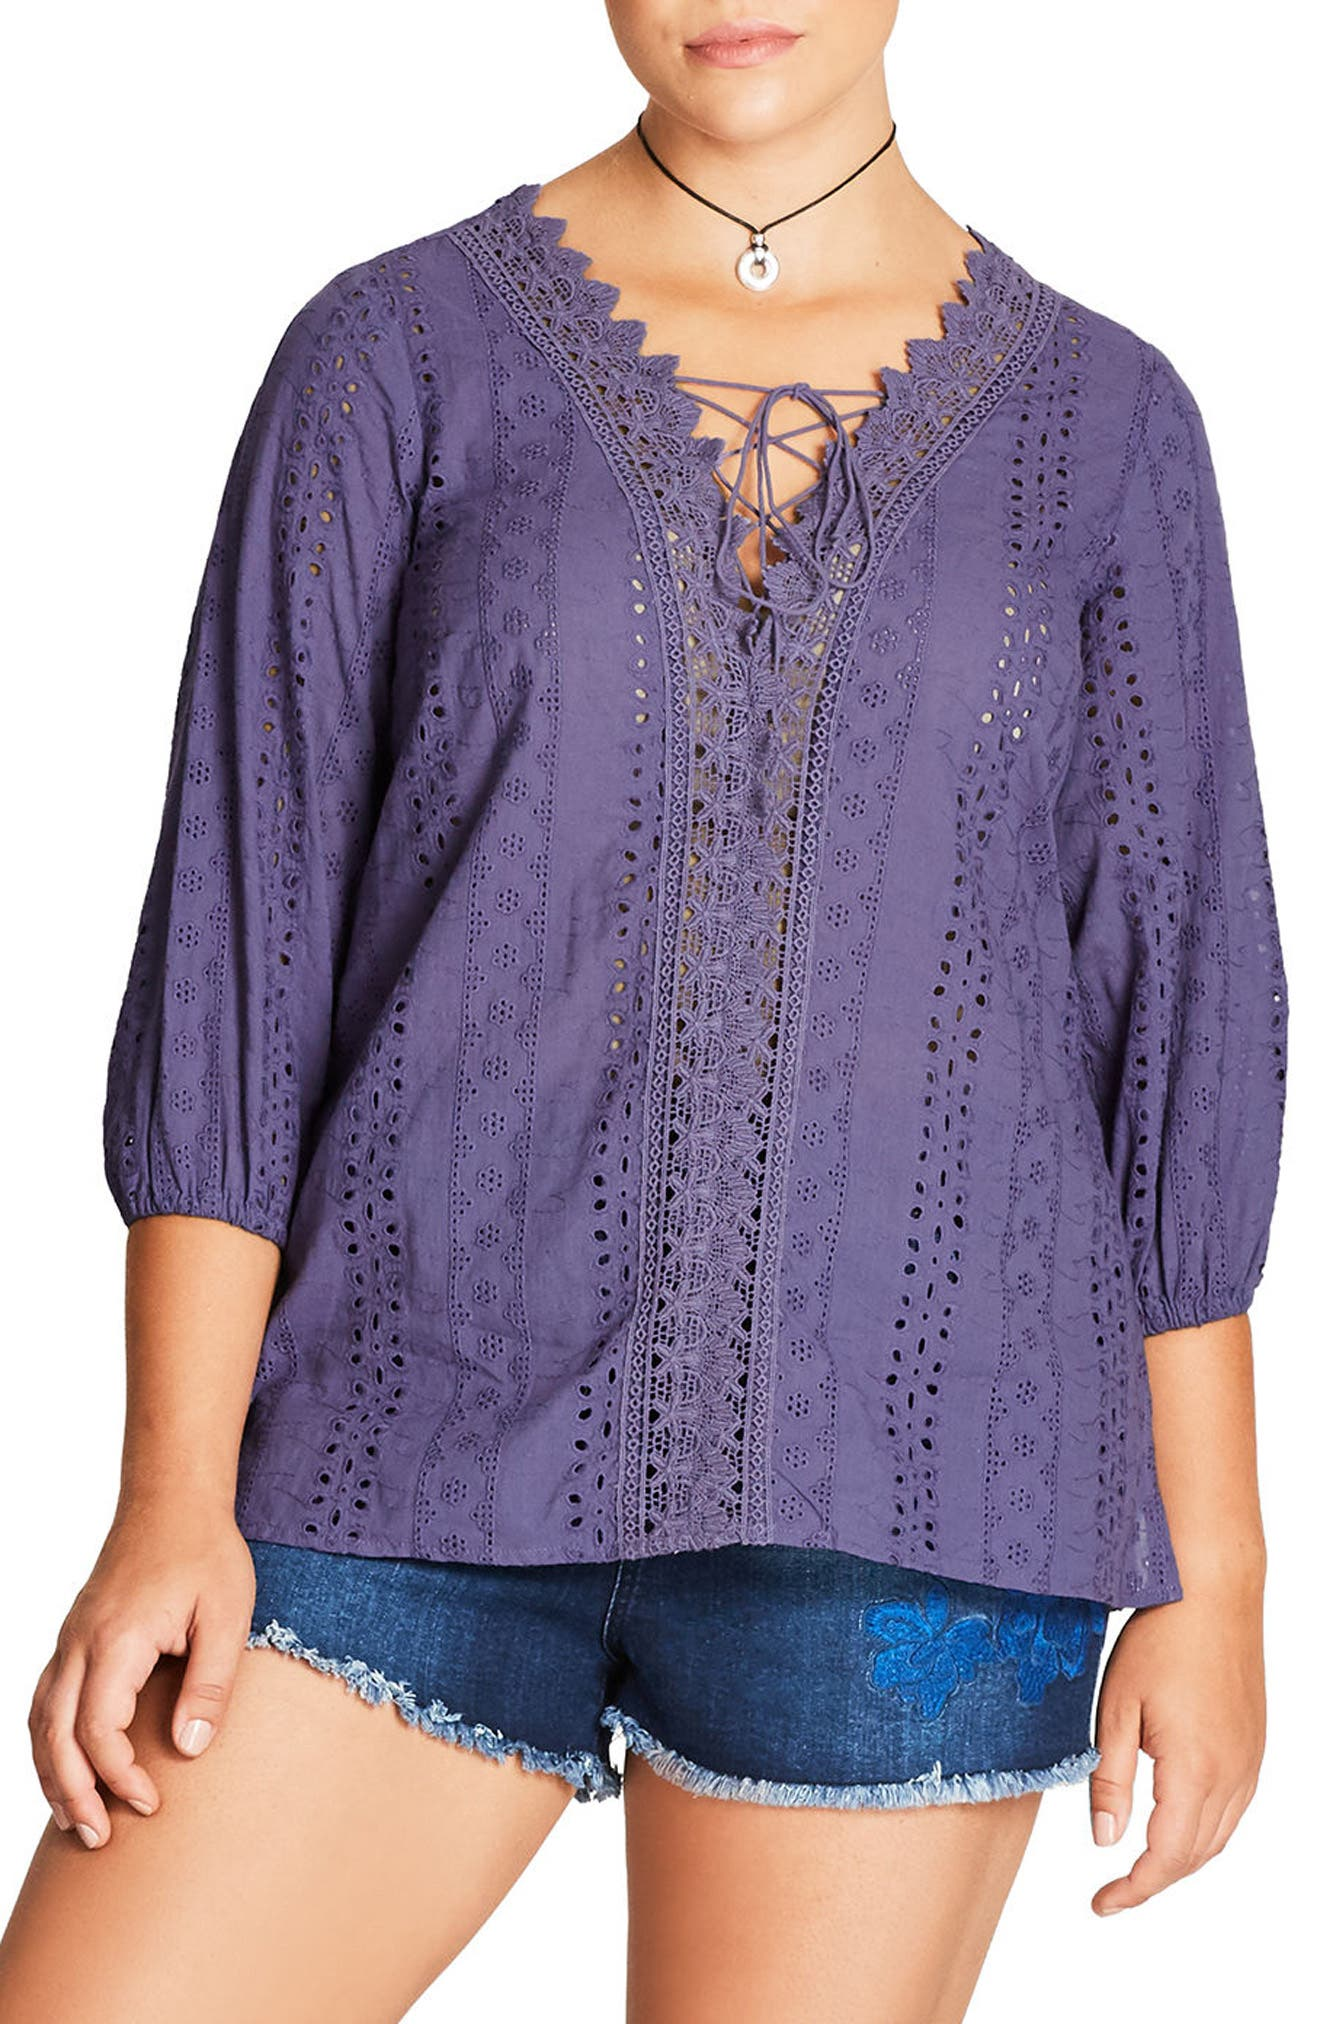 Alternate Image 1 Selected - City Chic Kiss Me Quick Top (Plus Size)